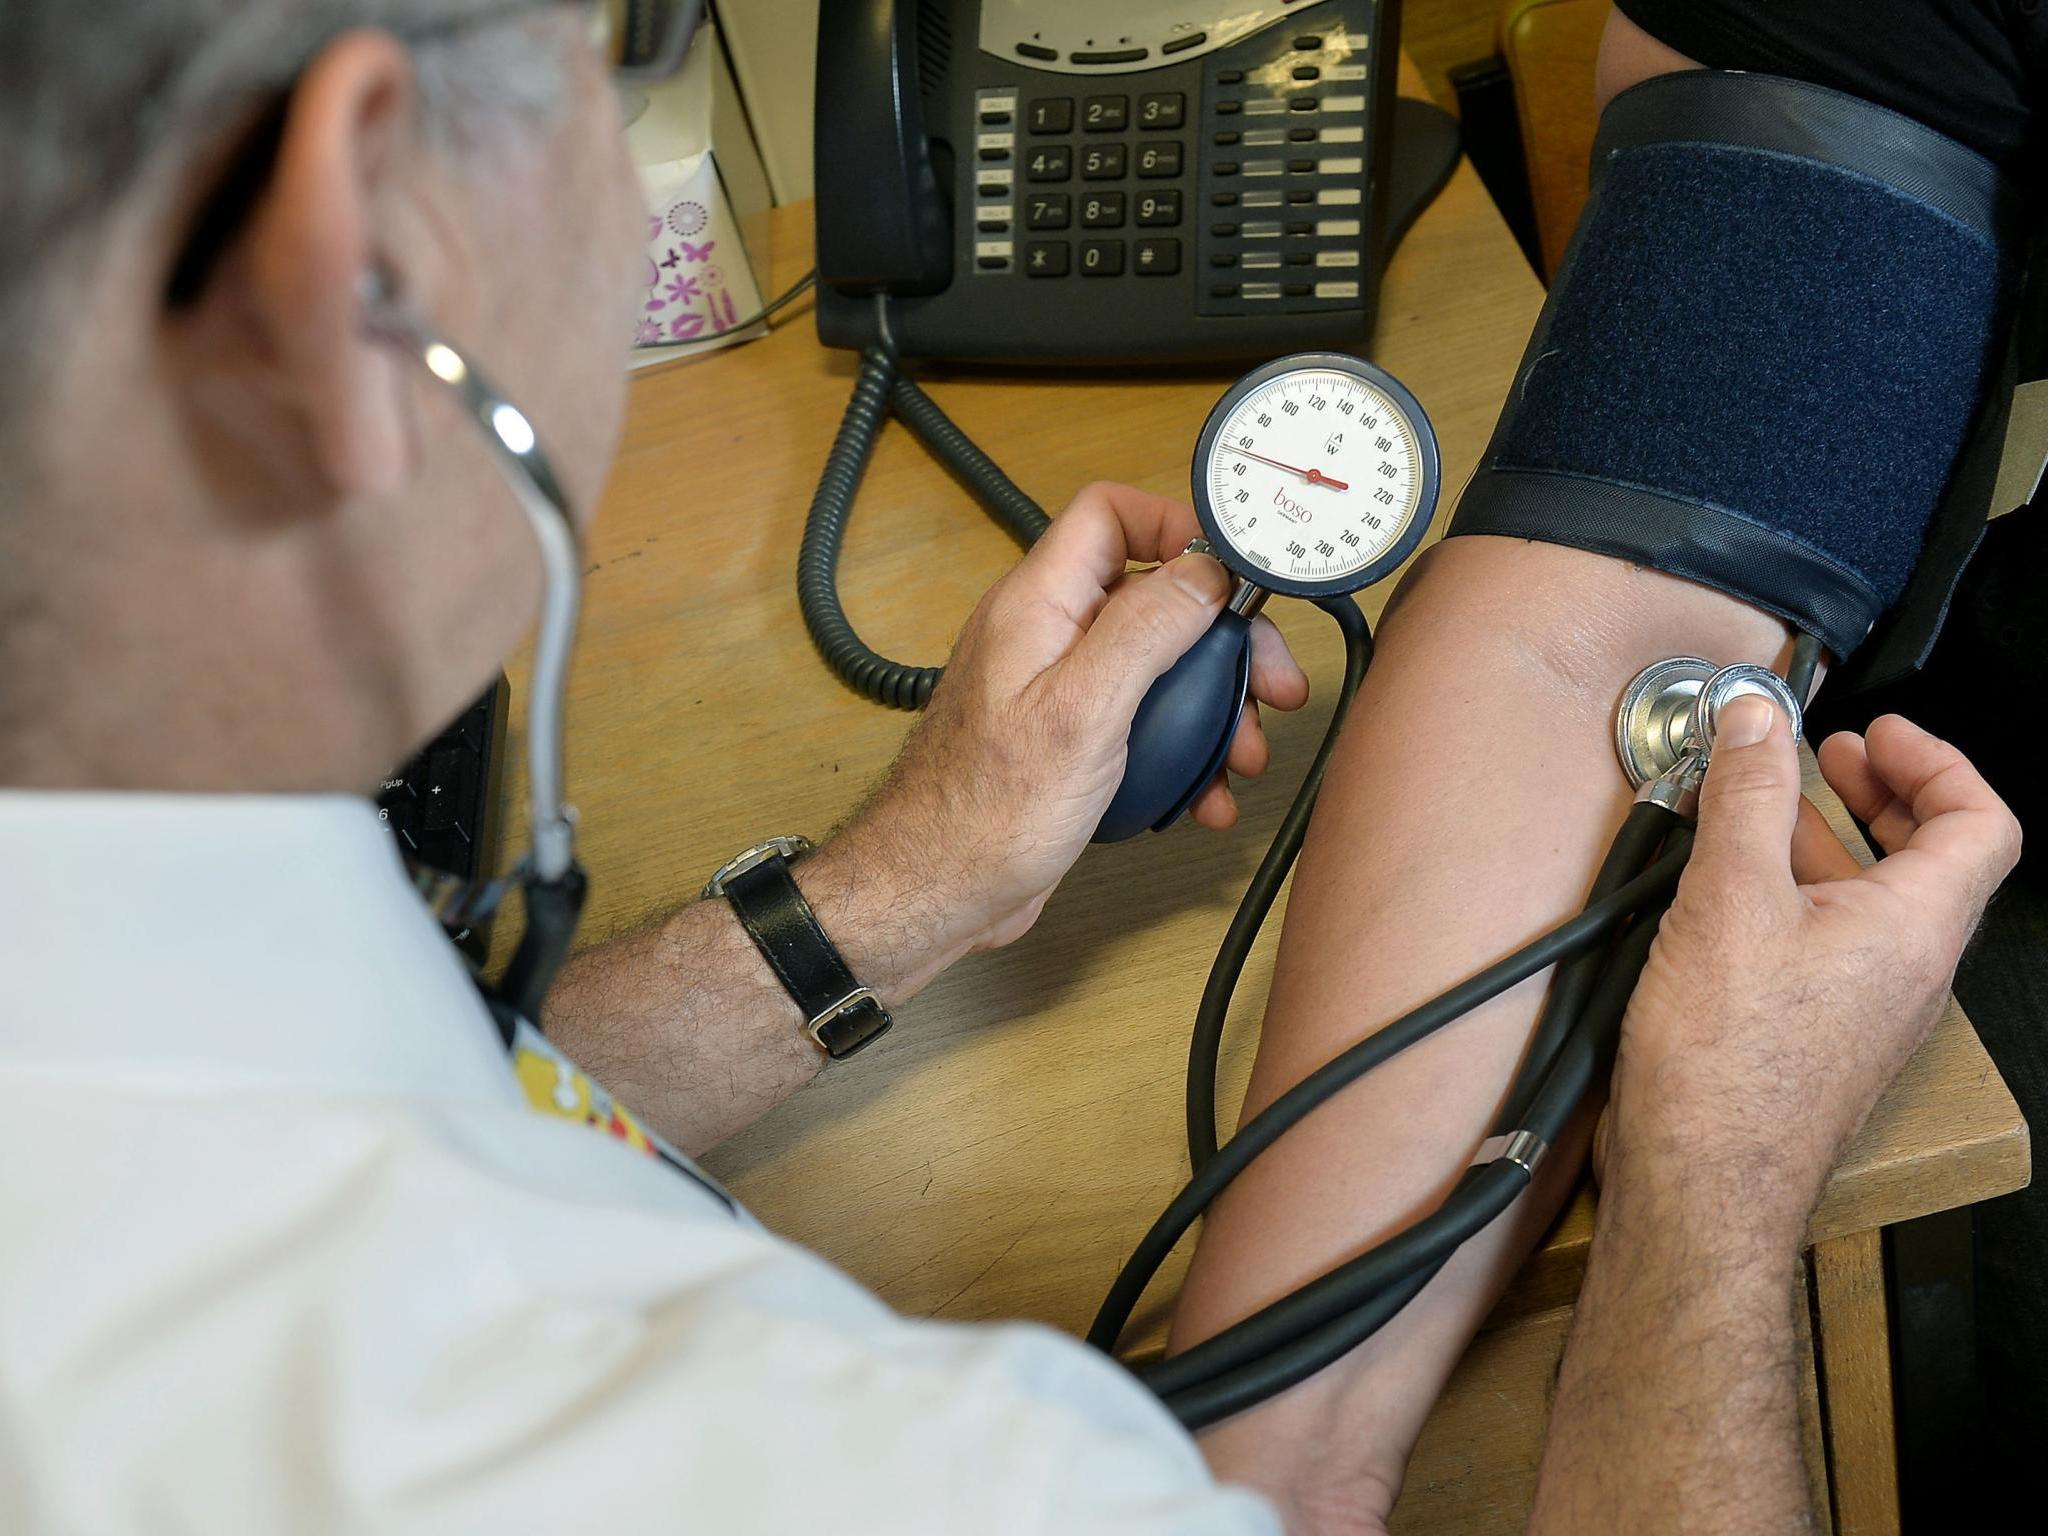 High blood pressure shrinks your brain, study finds